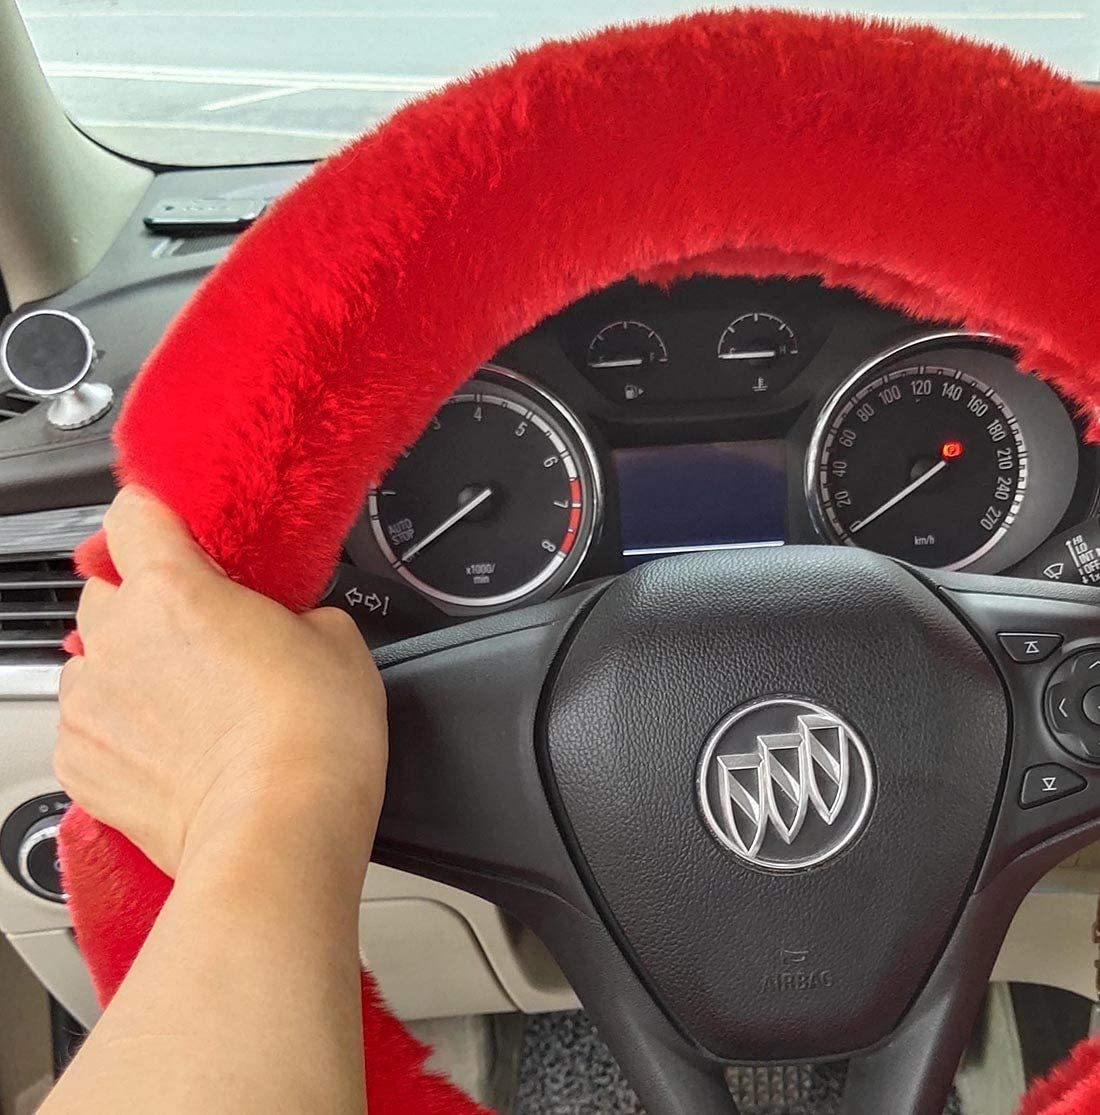 3pcs Set Winter Warm Fluffy Furry Fuzzy Plush Soft Fur car Steering Wheel Covers,Universal Thickening Faux Rabbit Fur Steering Covers/&Gear Shift Cover and/& Brake Cover red